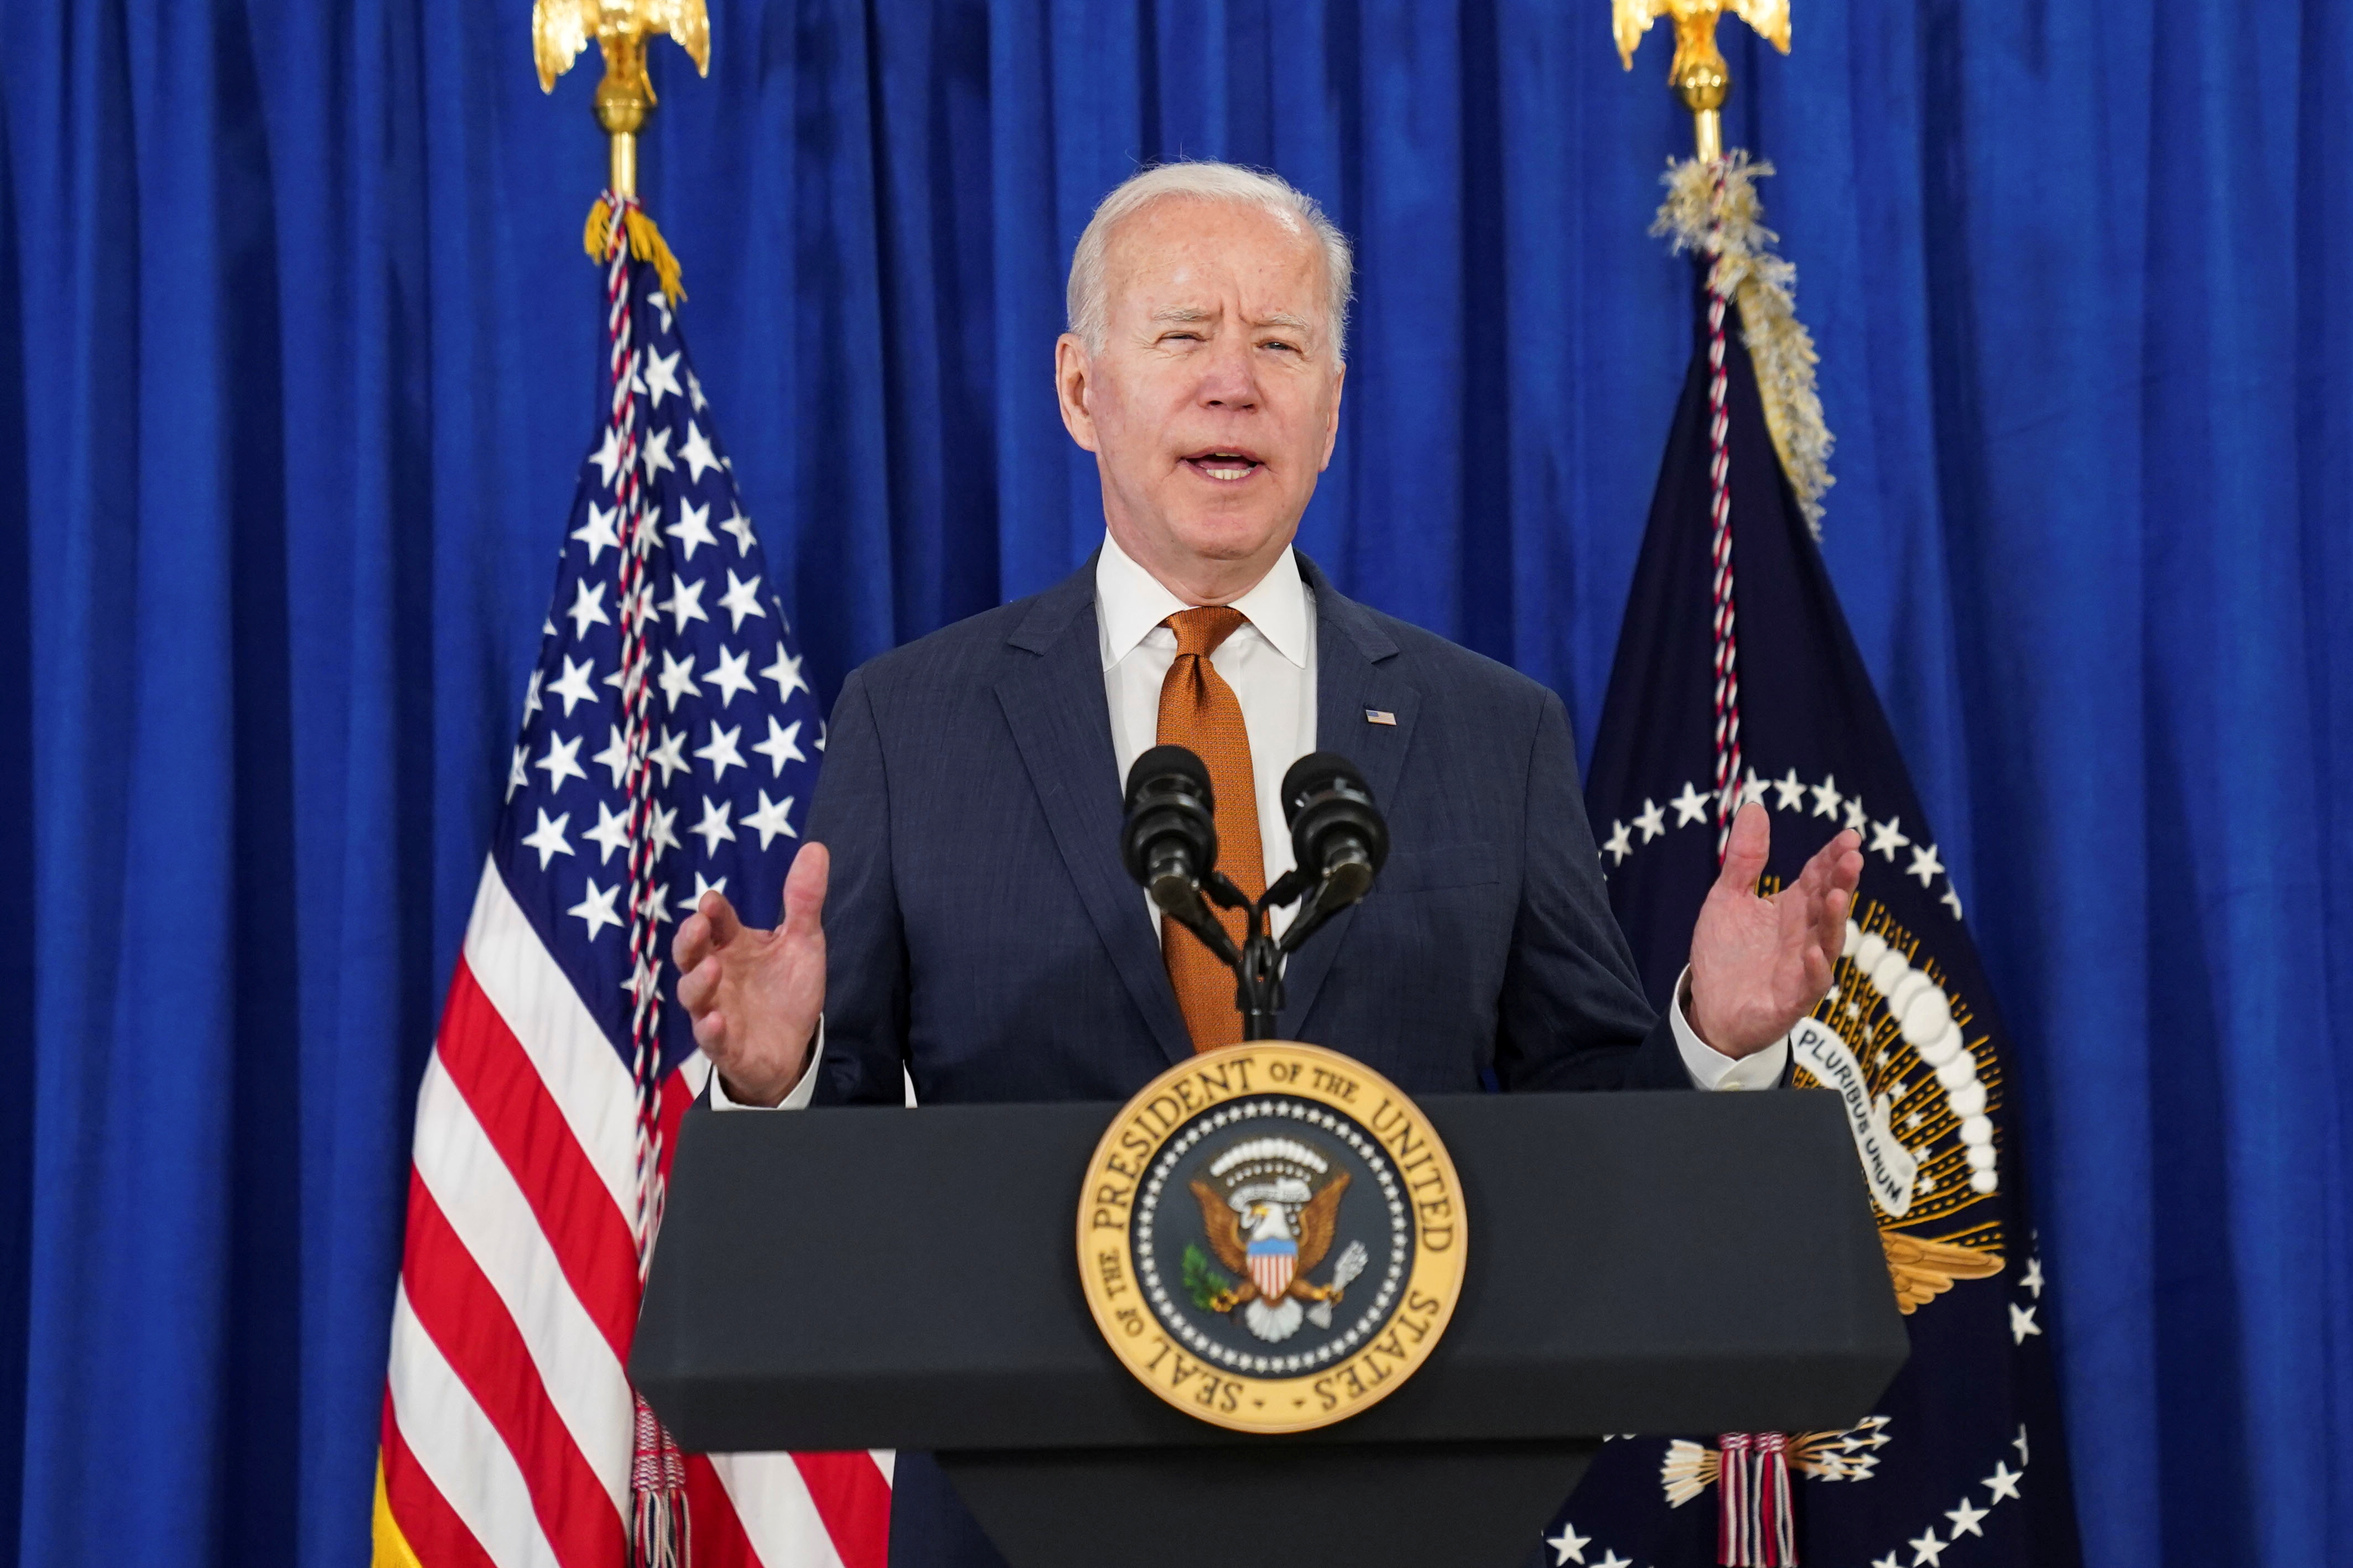 U.S. President Joe Biden delivers remarks on the May jobs report after U.S. employers boosted hiring amid the easing coronavirus disease (COVID-19) pandemic, at the Rehoboth Beach Convention Center in Rehoboth Beach, Delaware, U.S., June 4, 2021. REUTERS/Kevin Lamarque